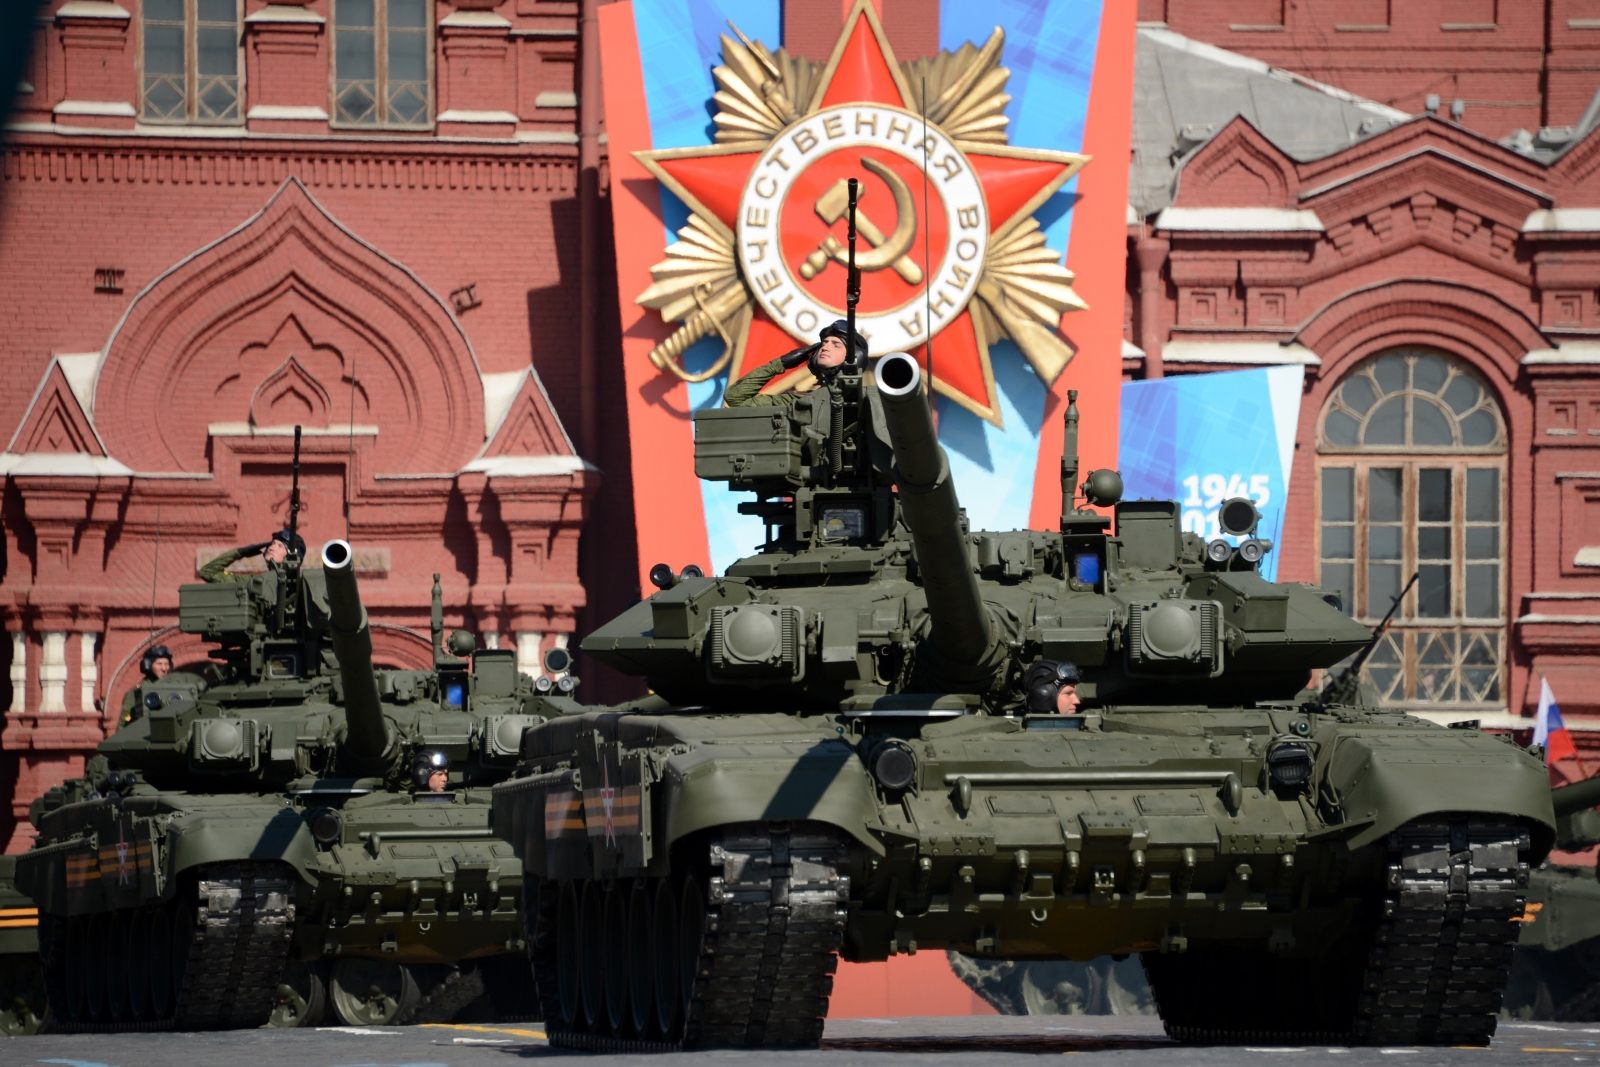 Tanks at lasy year's Victory Day parade in Moscow. (AFP)